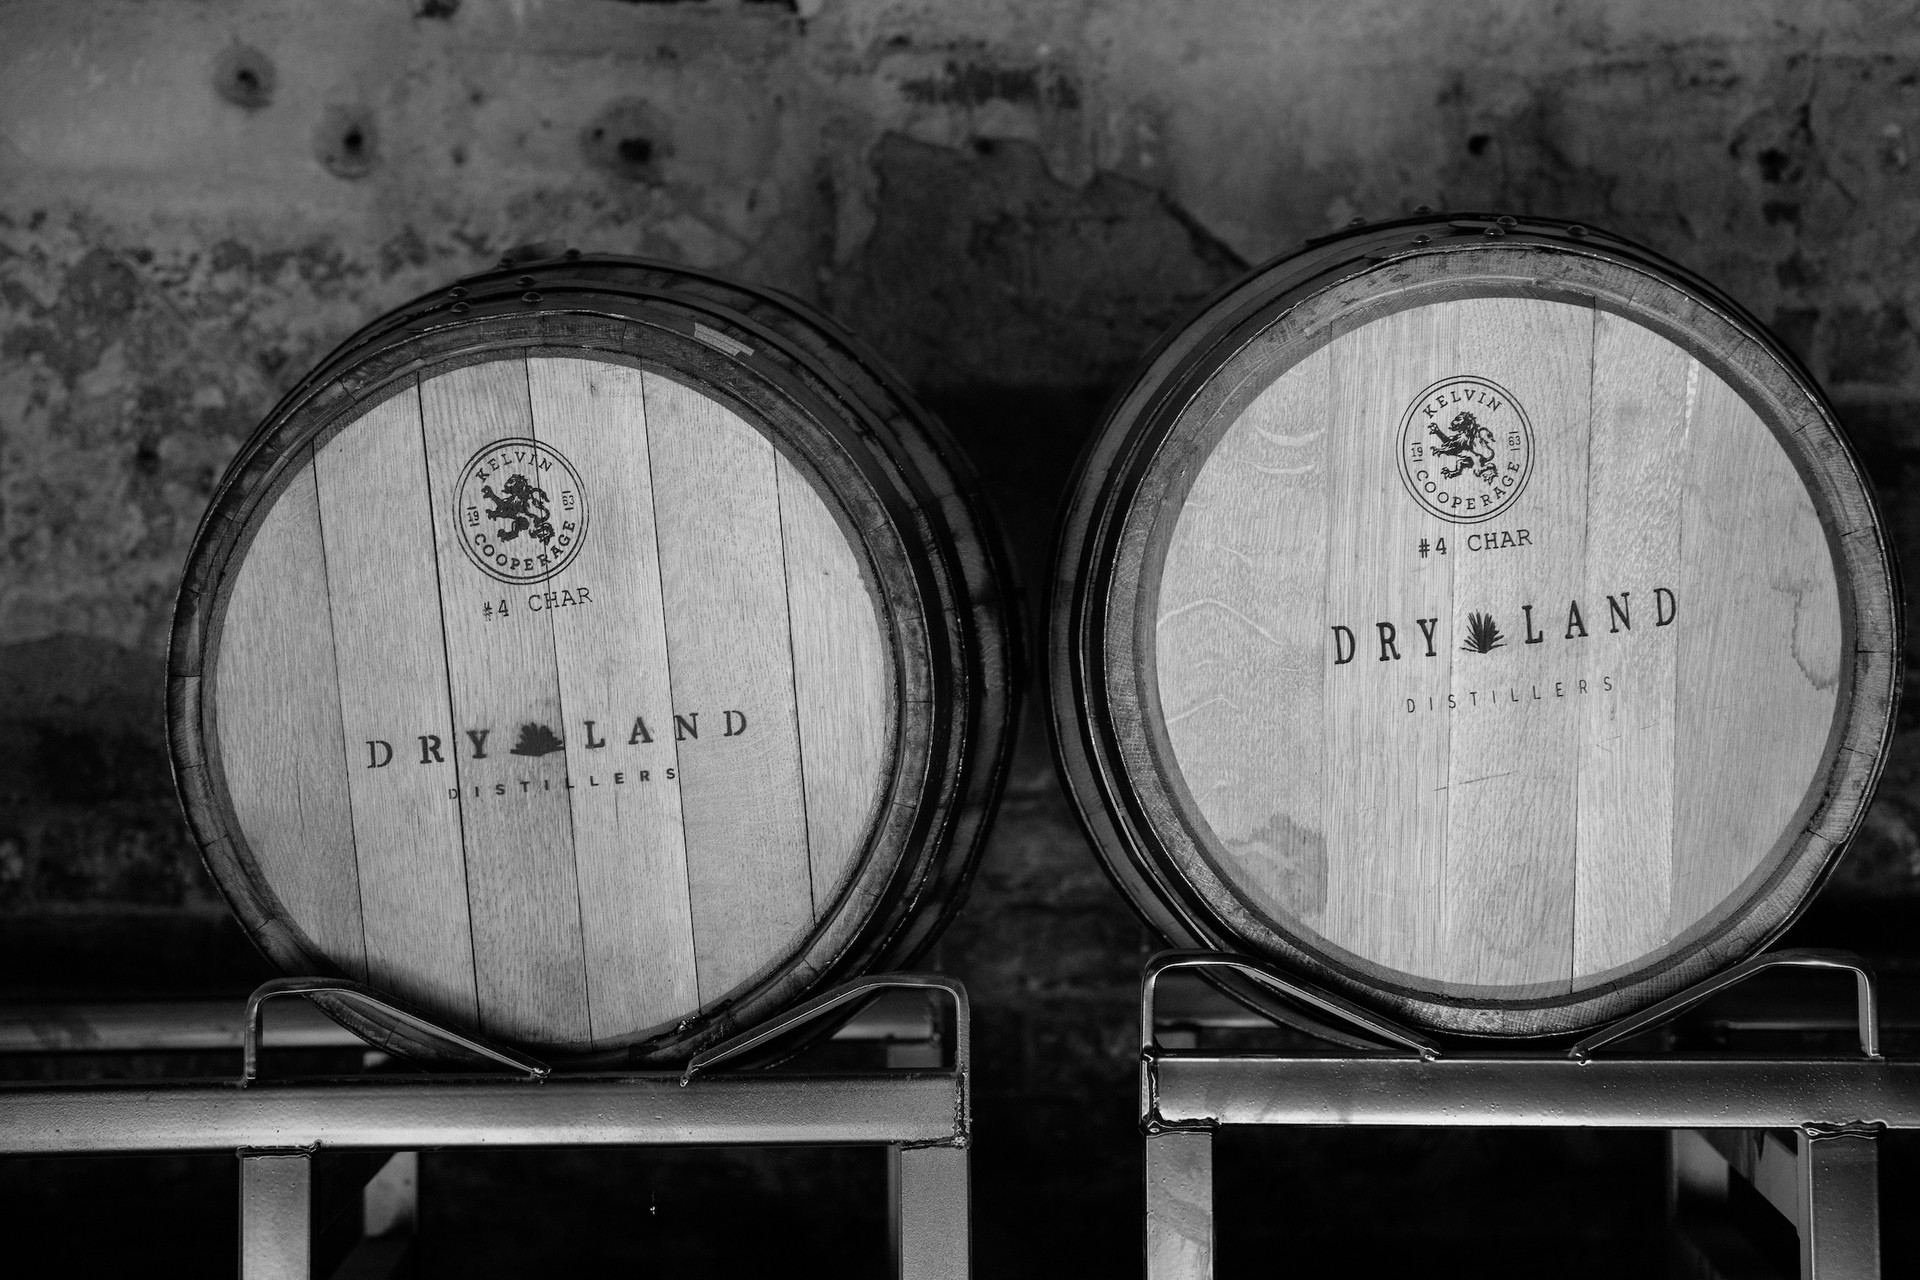 Dry Land Distillers